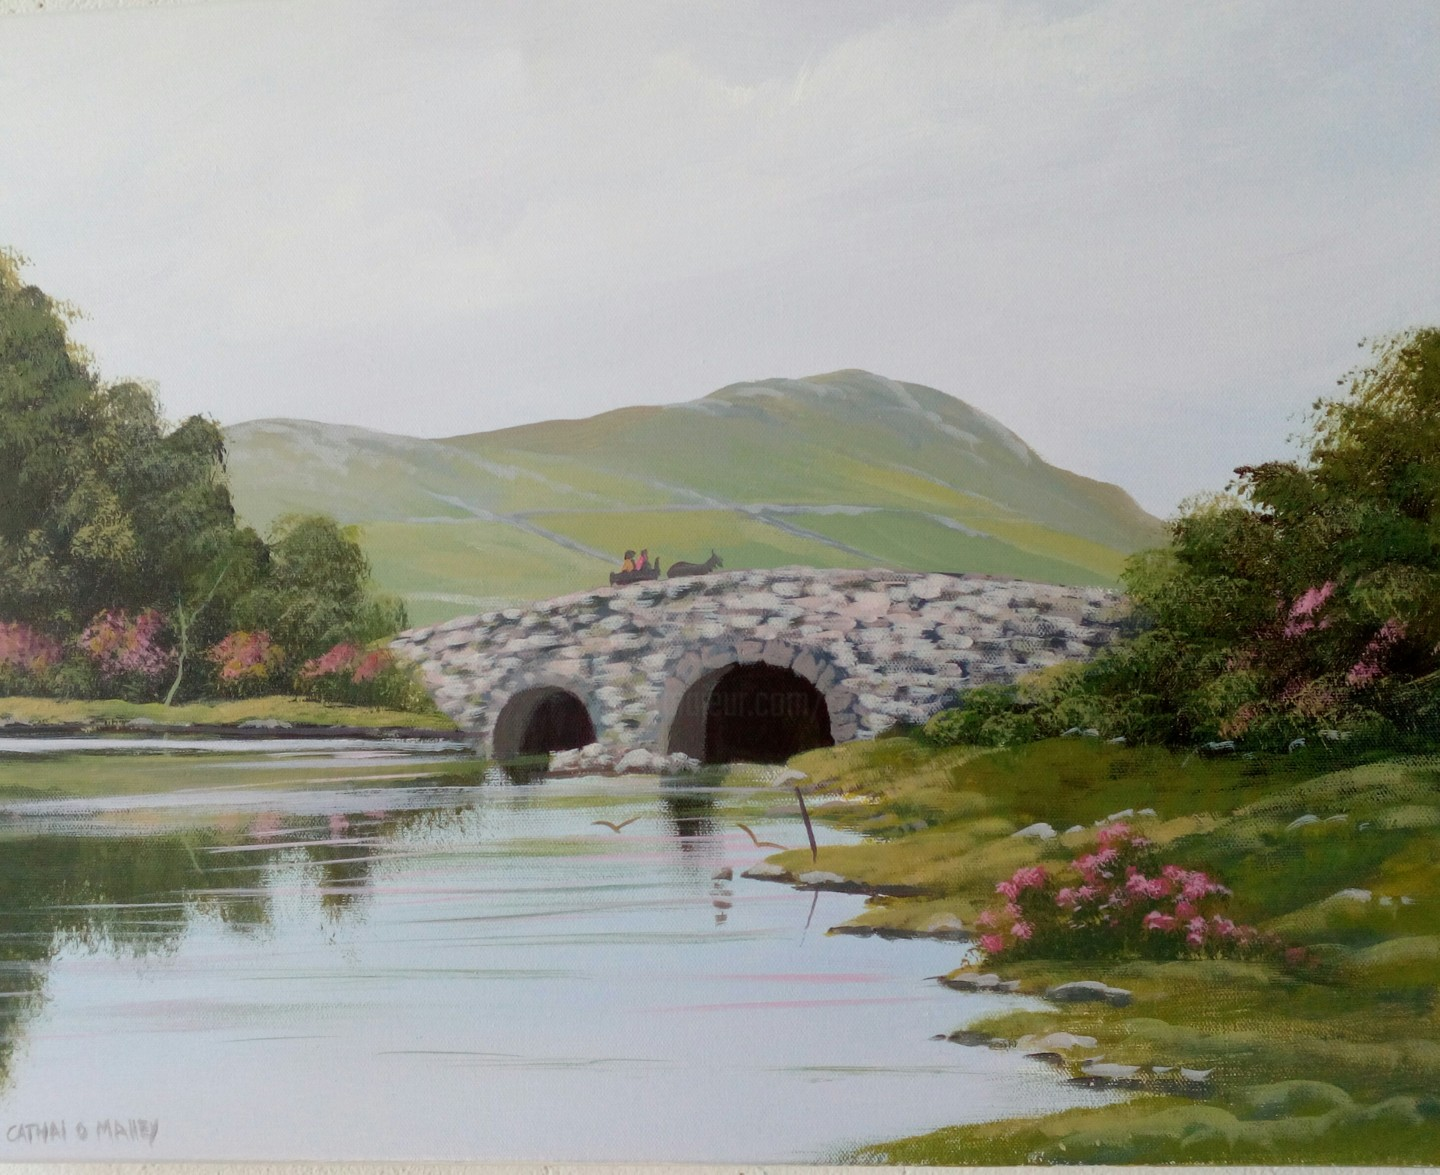 Cathal O Malley - Quiet man bridge ,